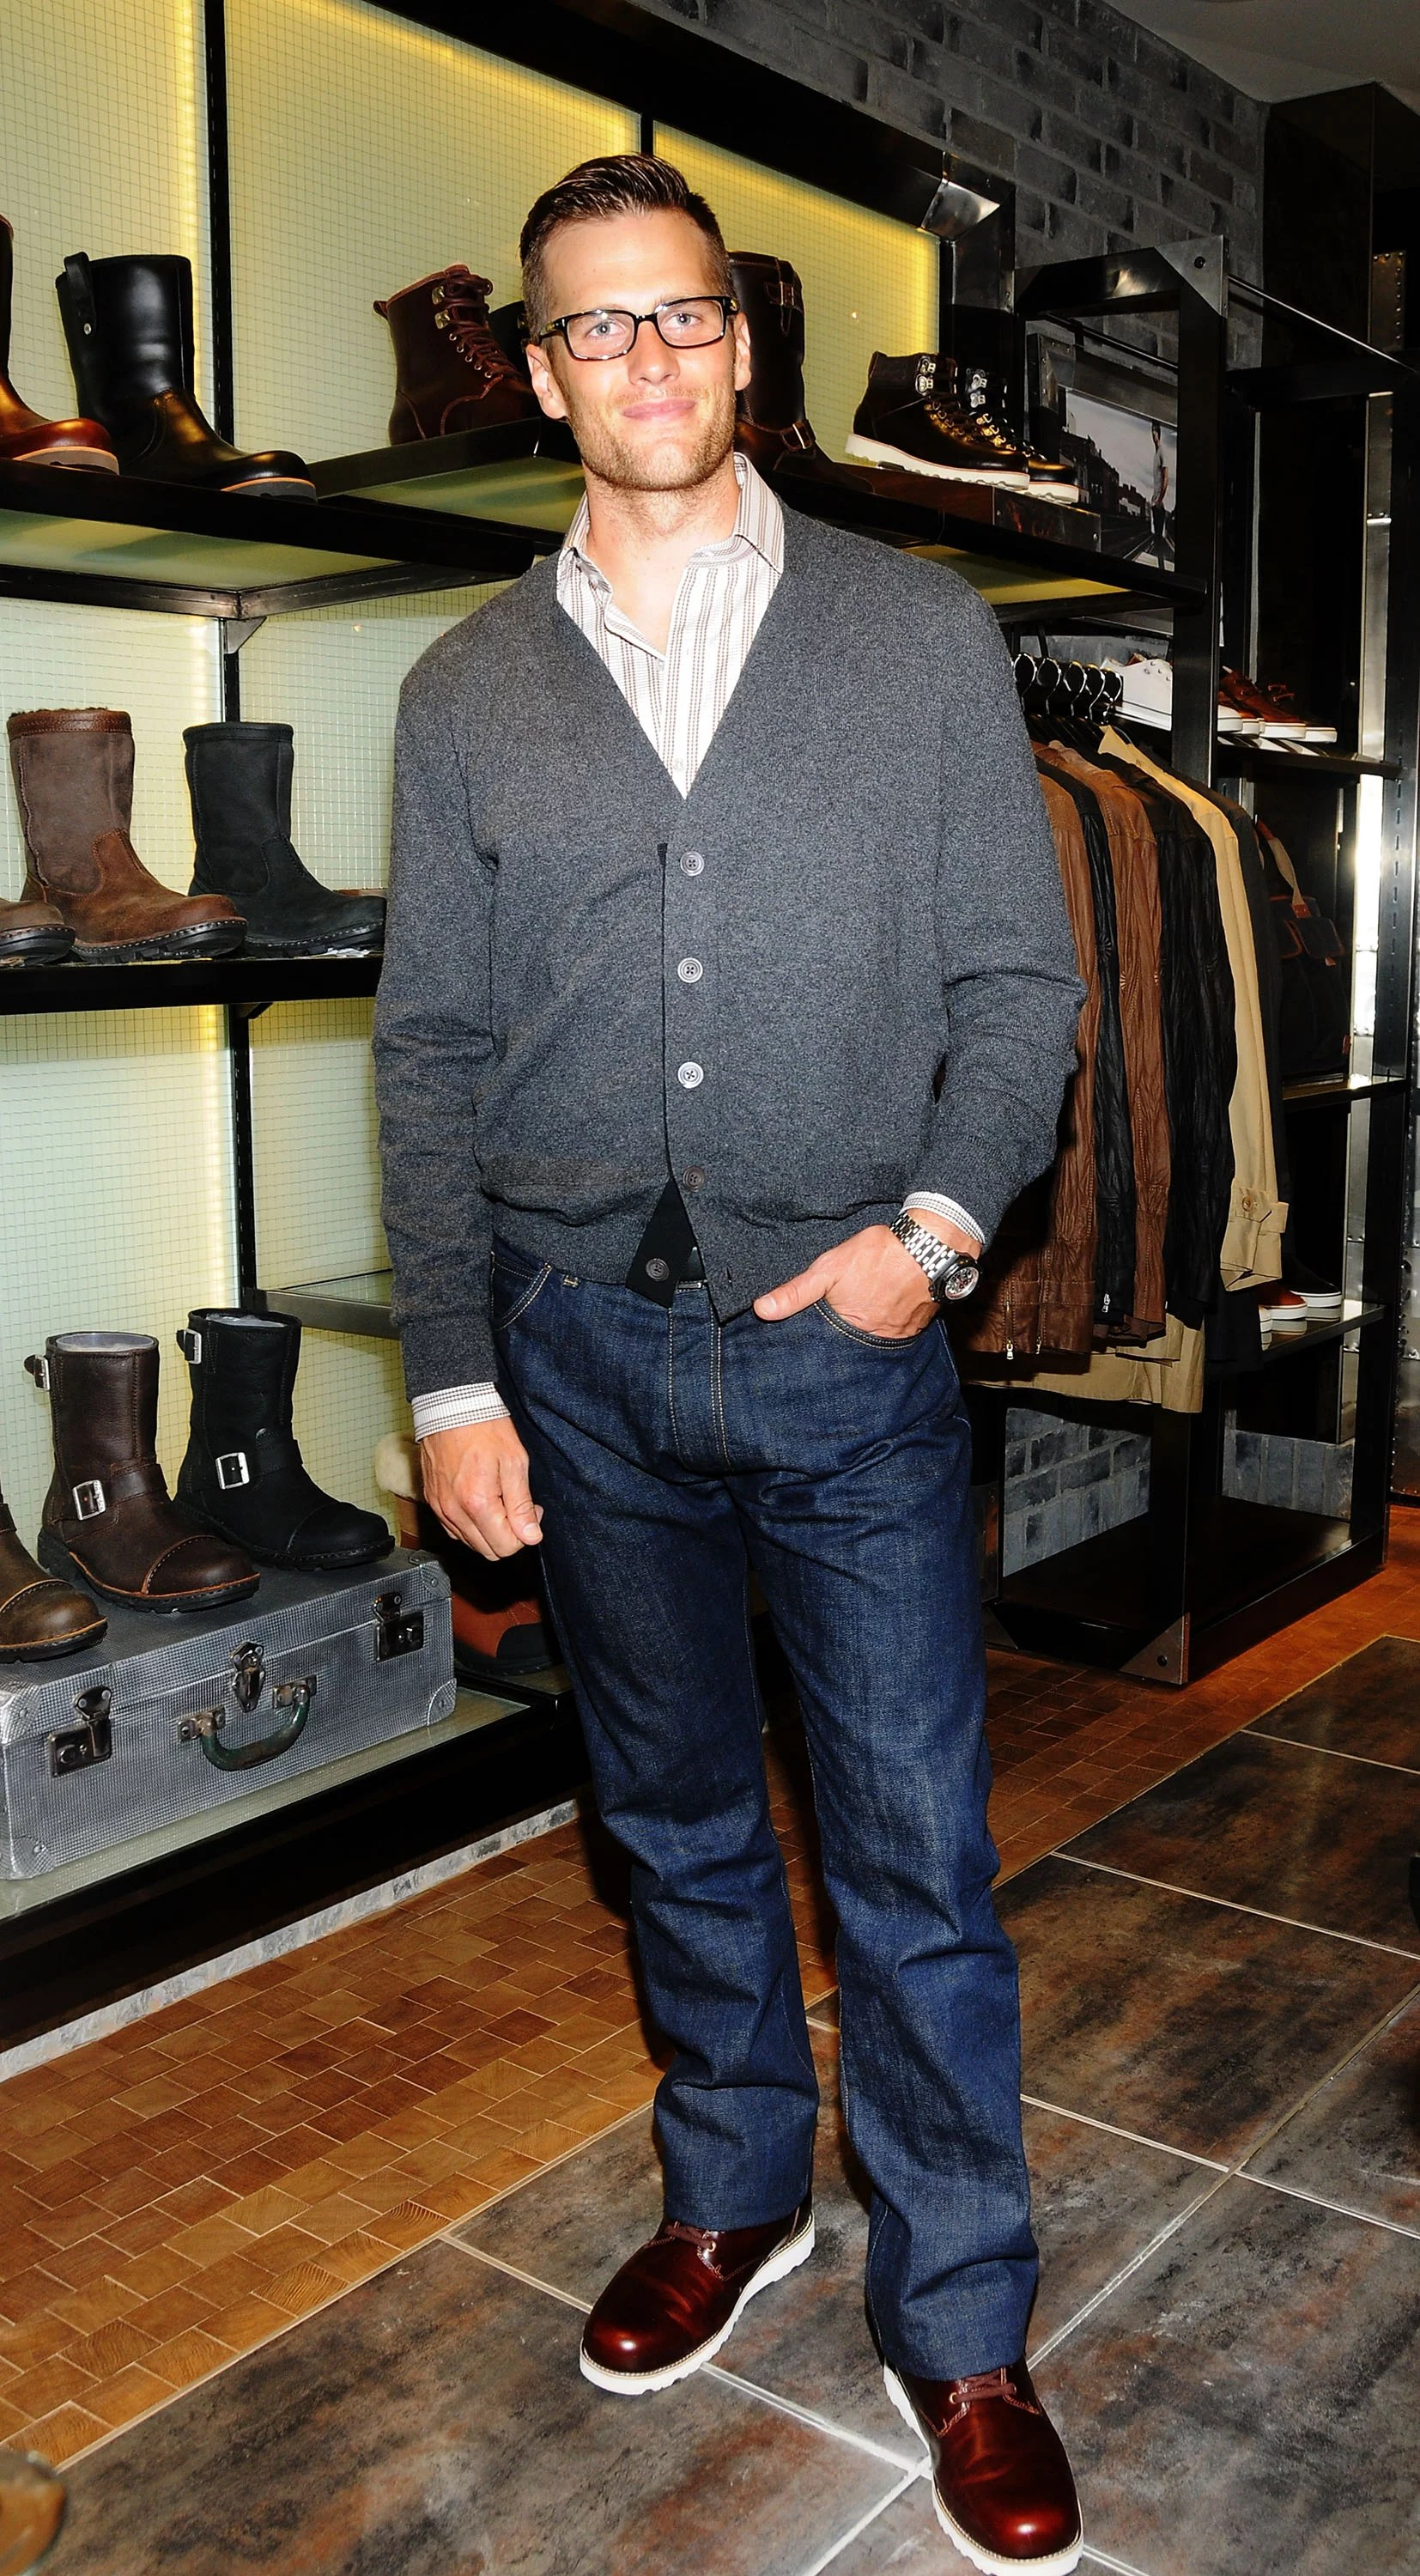 Tom Brady Ugg Model - Tom Brady And His Uggs Ugg Boots Ugg Bailey Boots Ugg Snow Boots / However. on thursday it was back to work as tom brady was ...